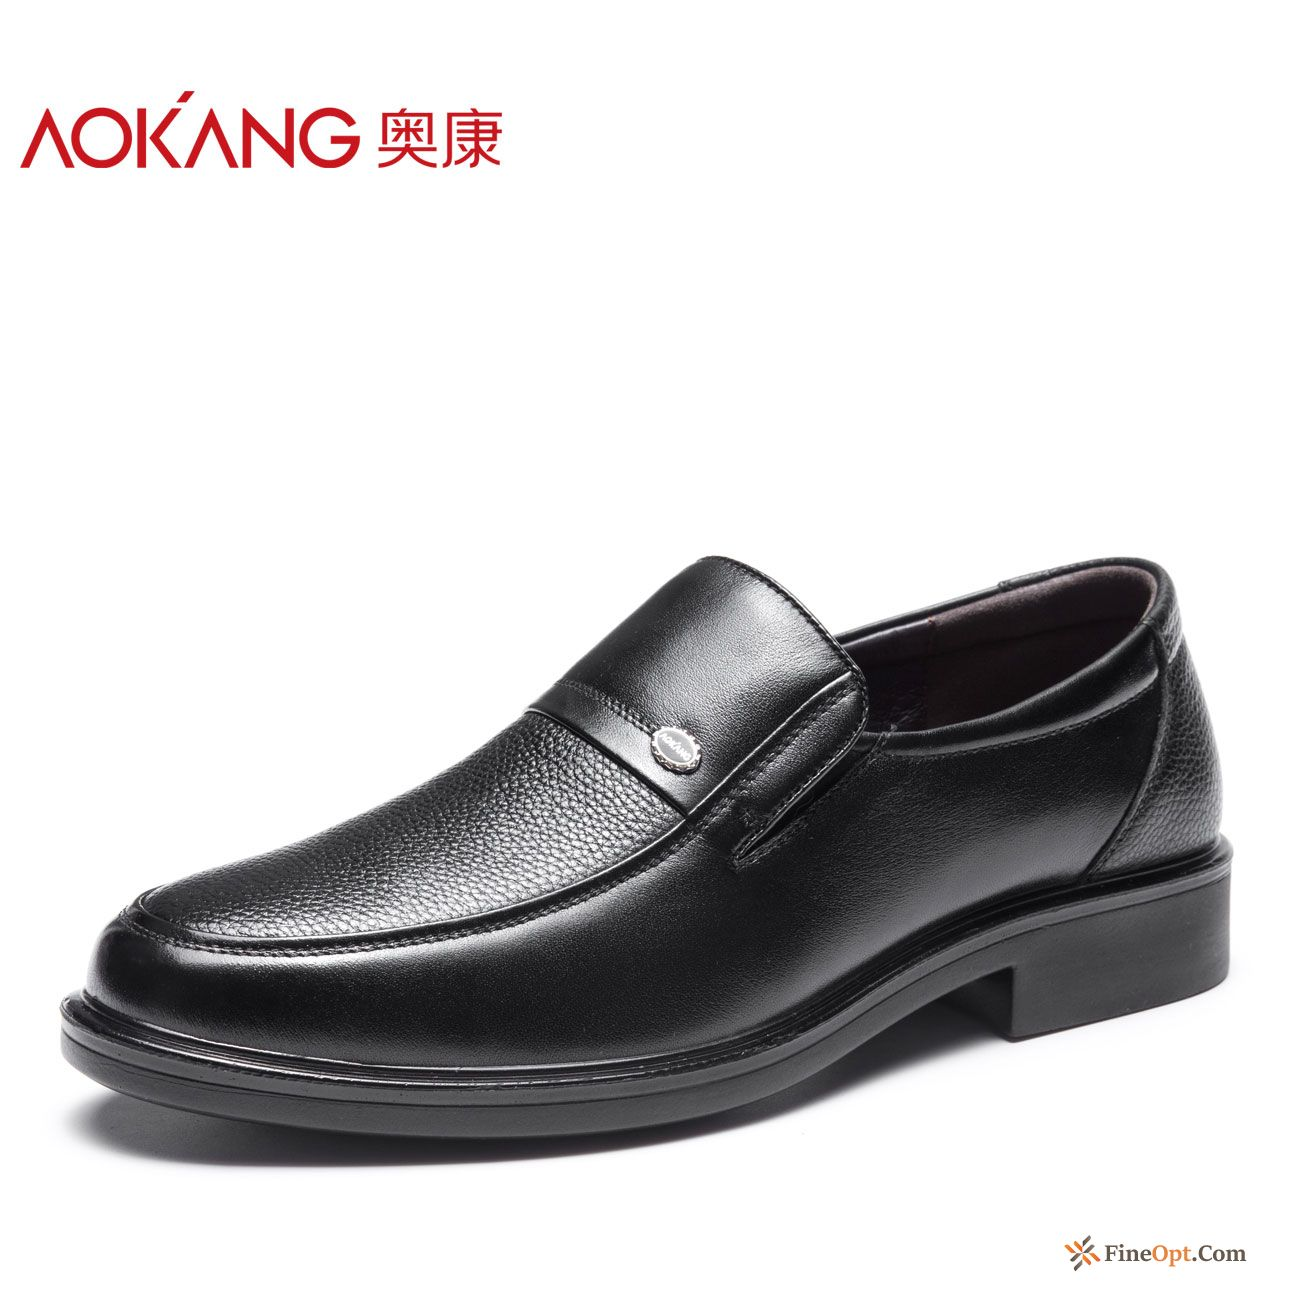 Causal Shoes Genuine Leather Men's Comfortable Leather Shoes Black Slip On Plum Sale